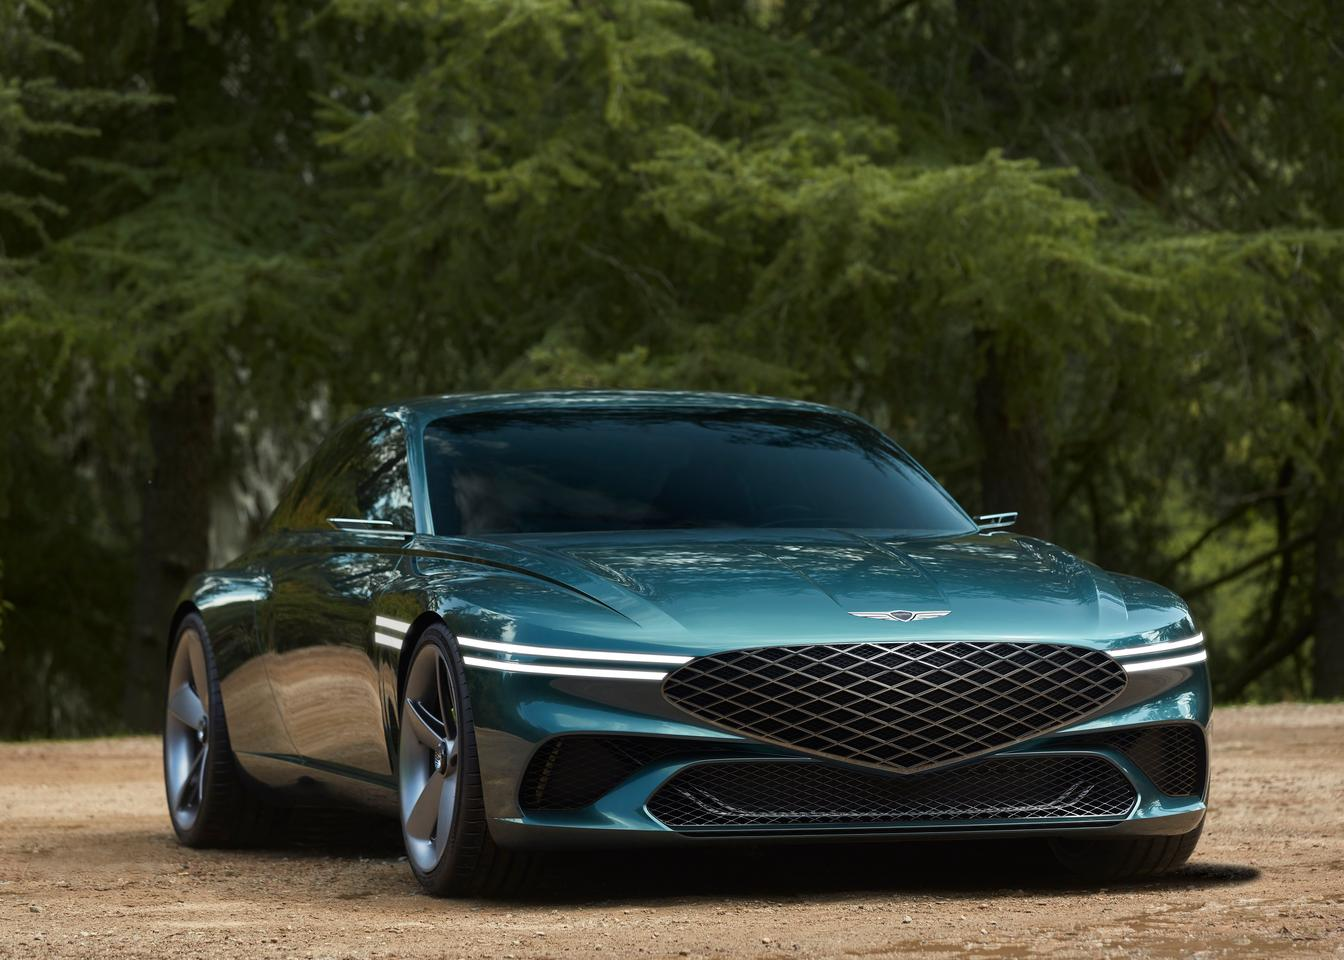 The X Concept looks out at the world through thin, sharp Two Line headlights